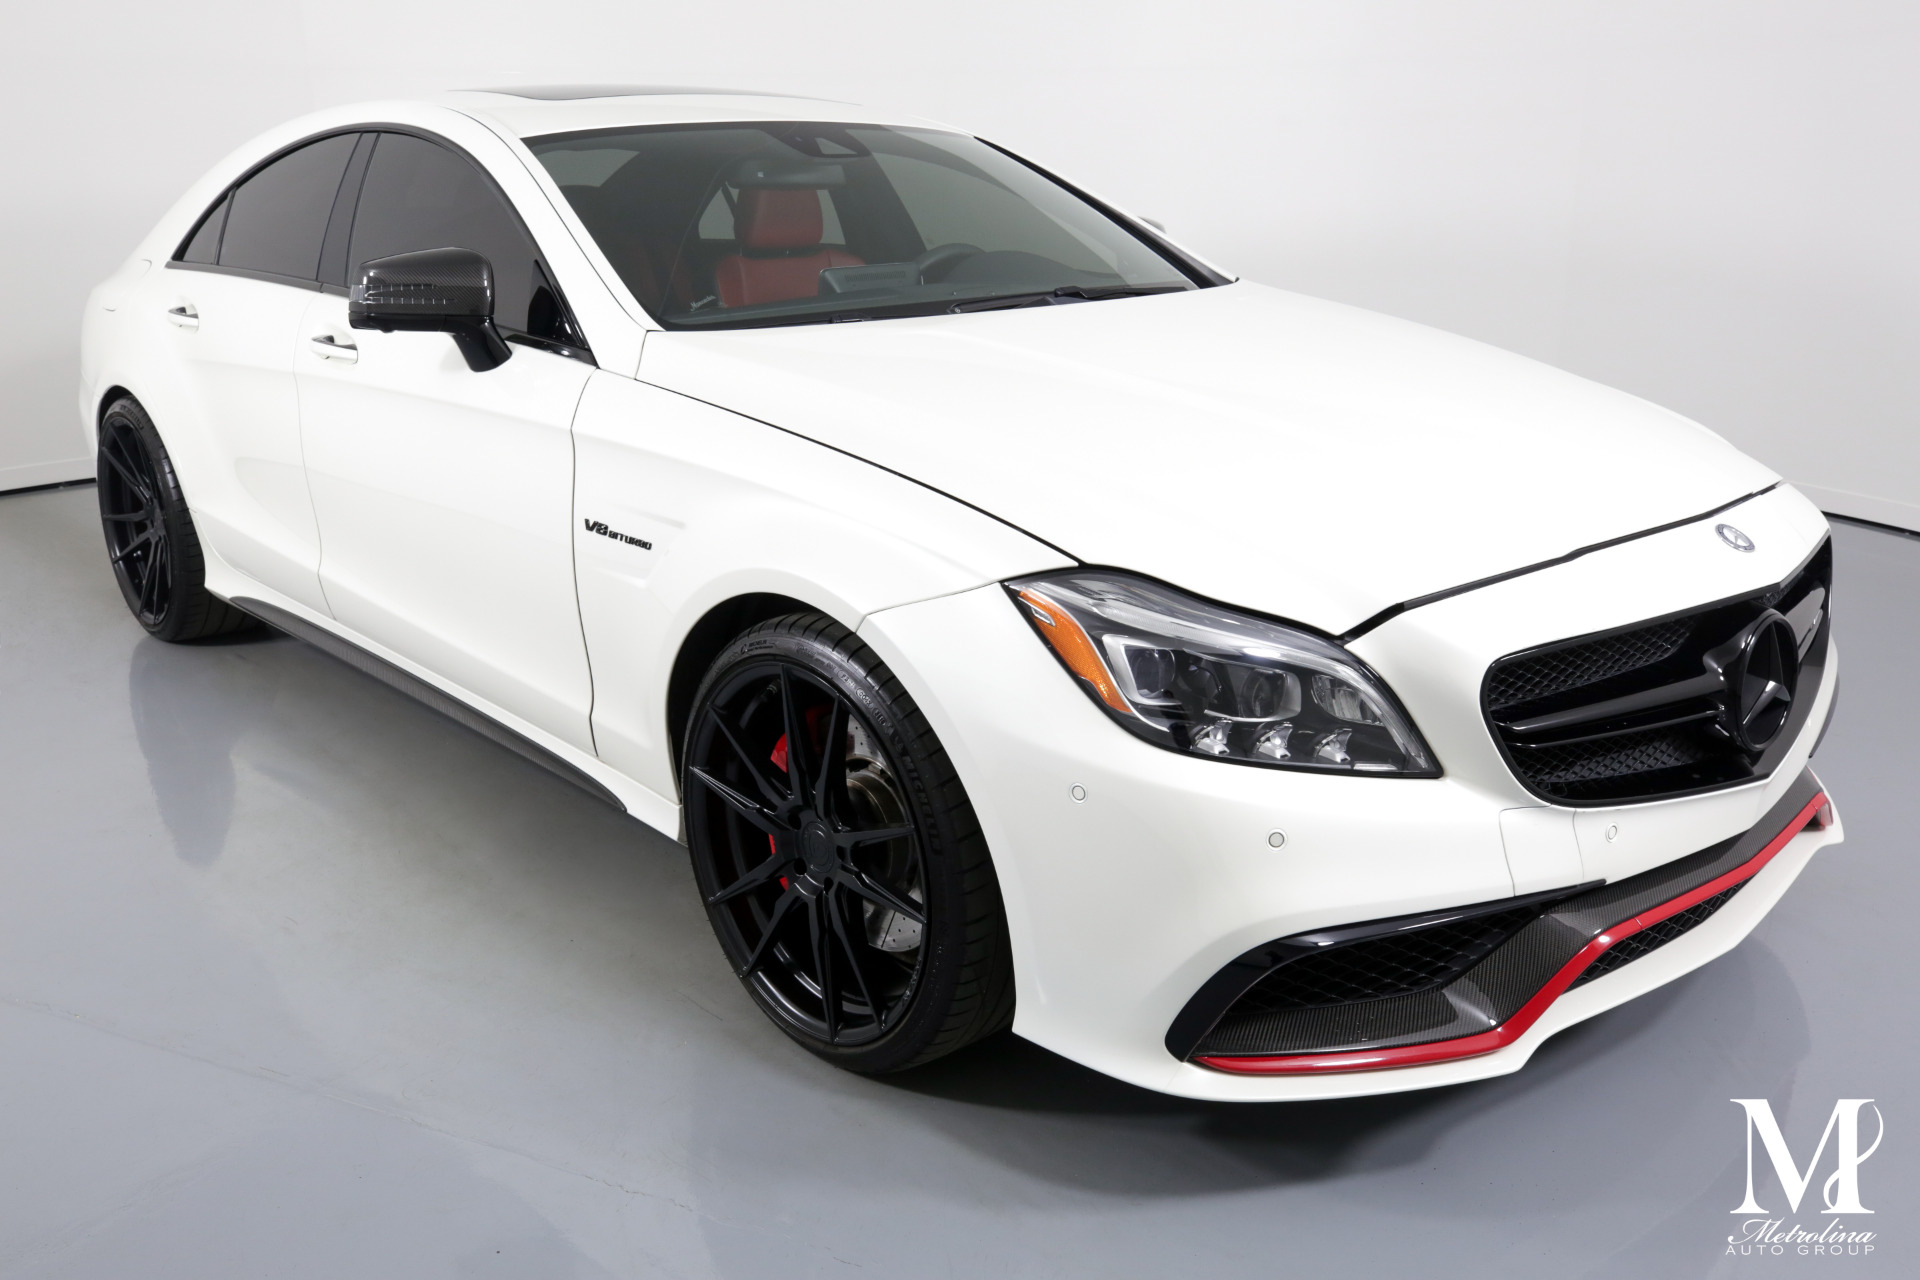 Used 2016 Mercedes-Benz CLS AMG CLS 63 S for sale $61,996 at Metrolina Auto Group in Charlotte NC 28217 - 2